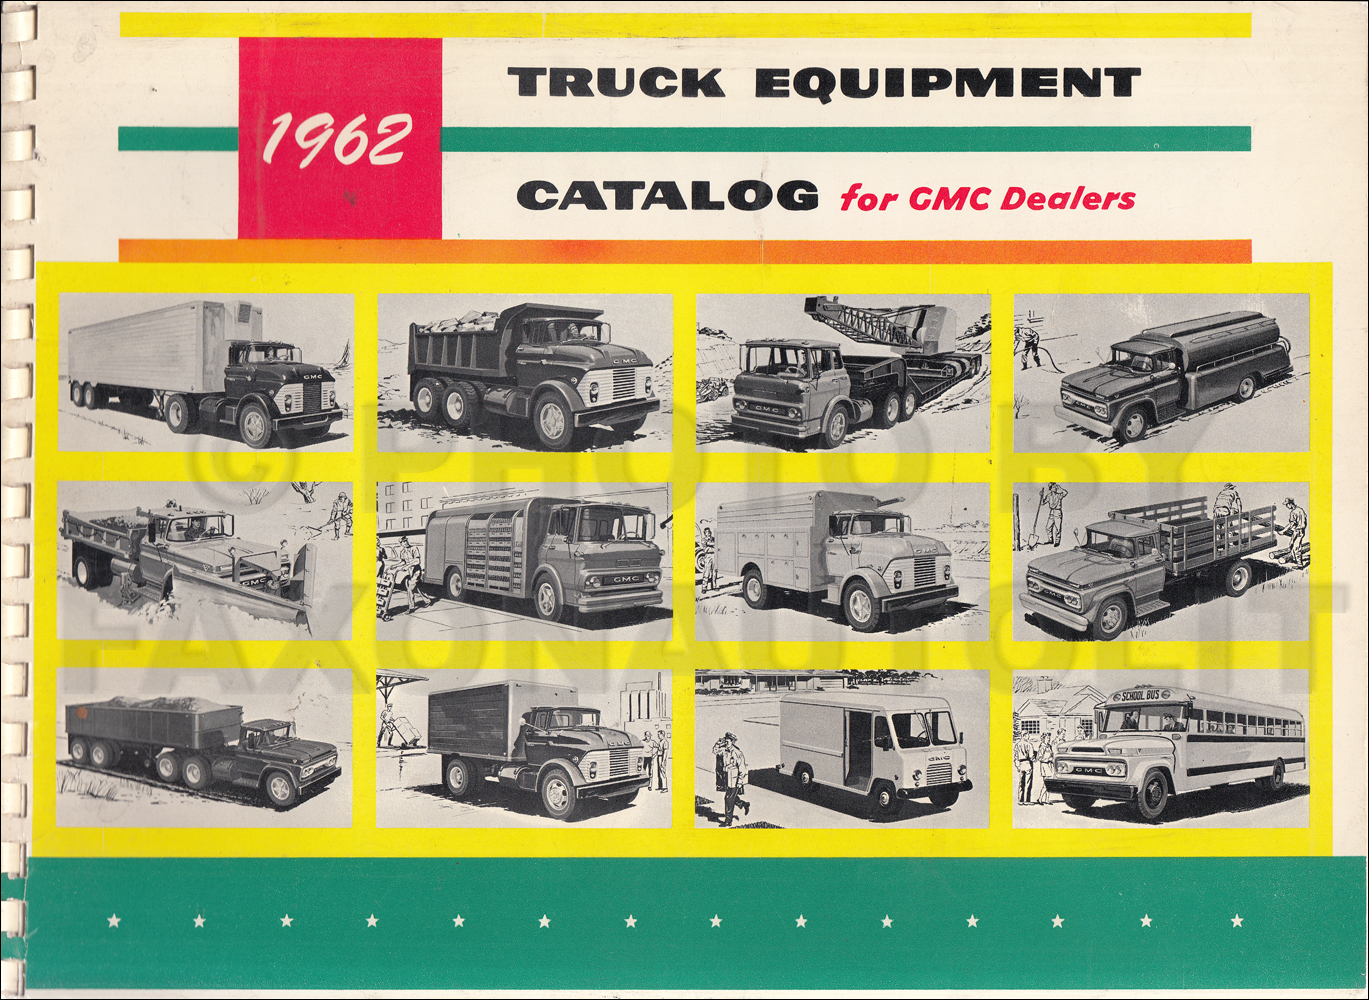 1962 GMC Truck Special Equipment Catalog